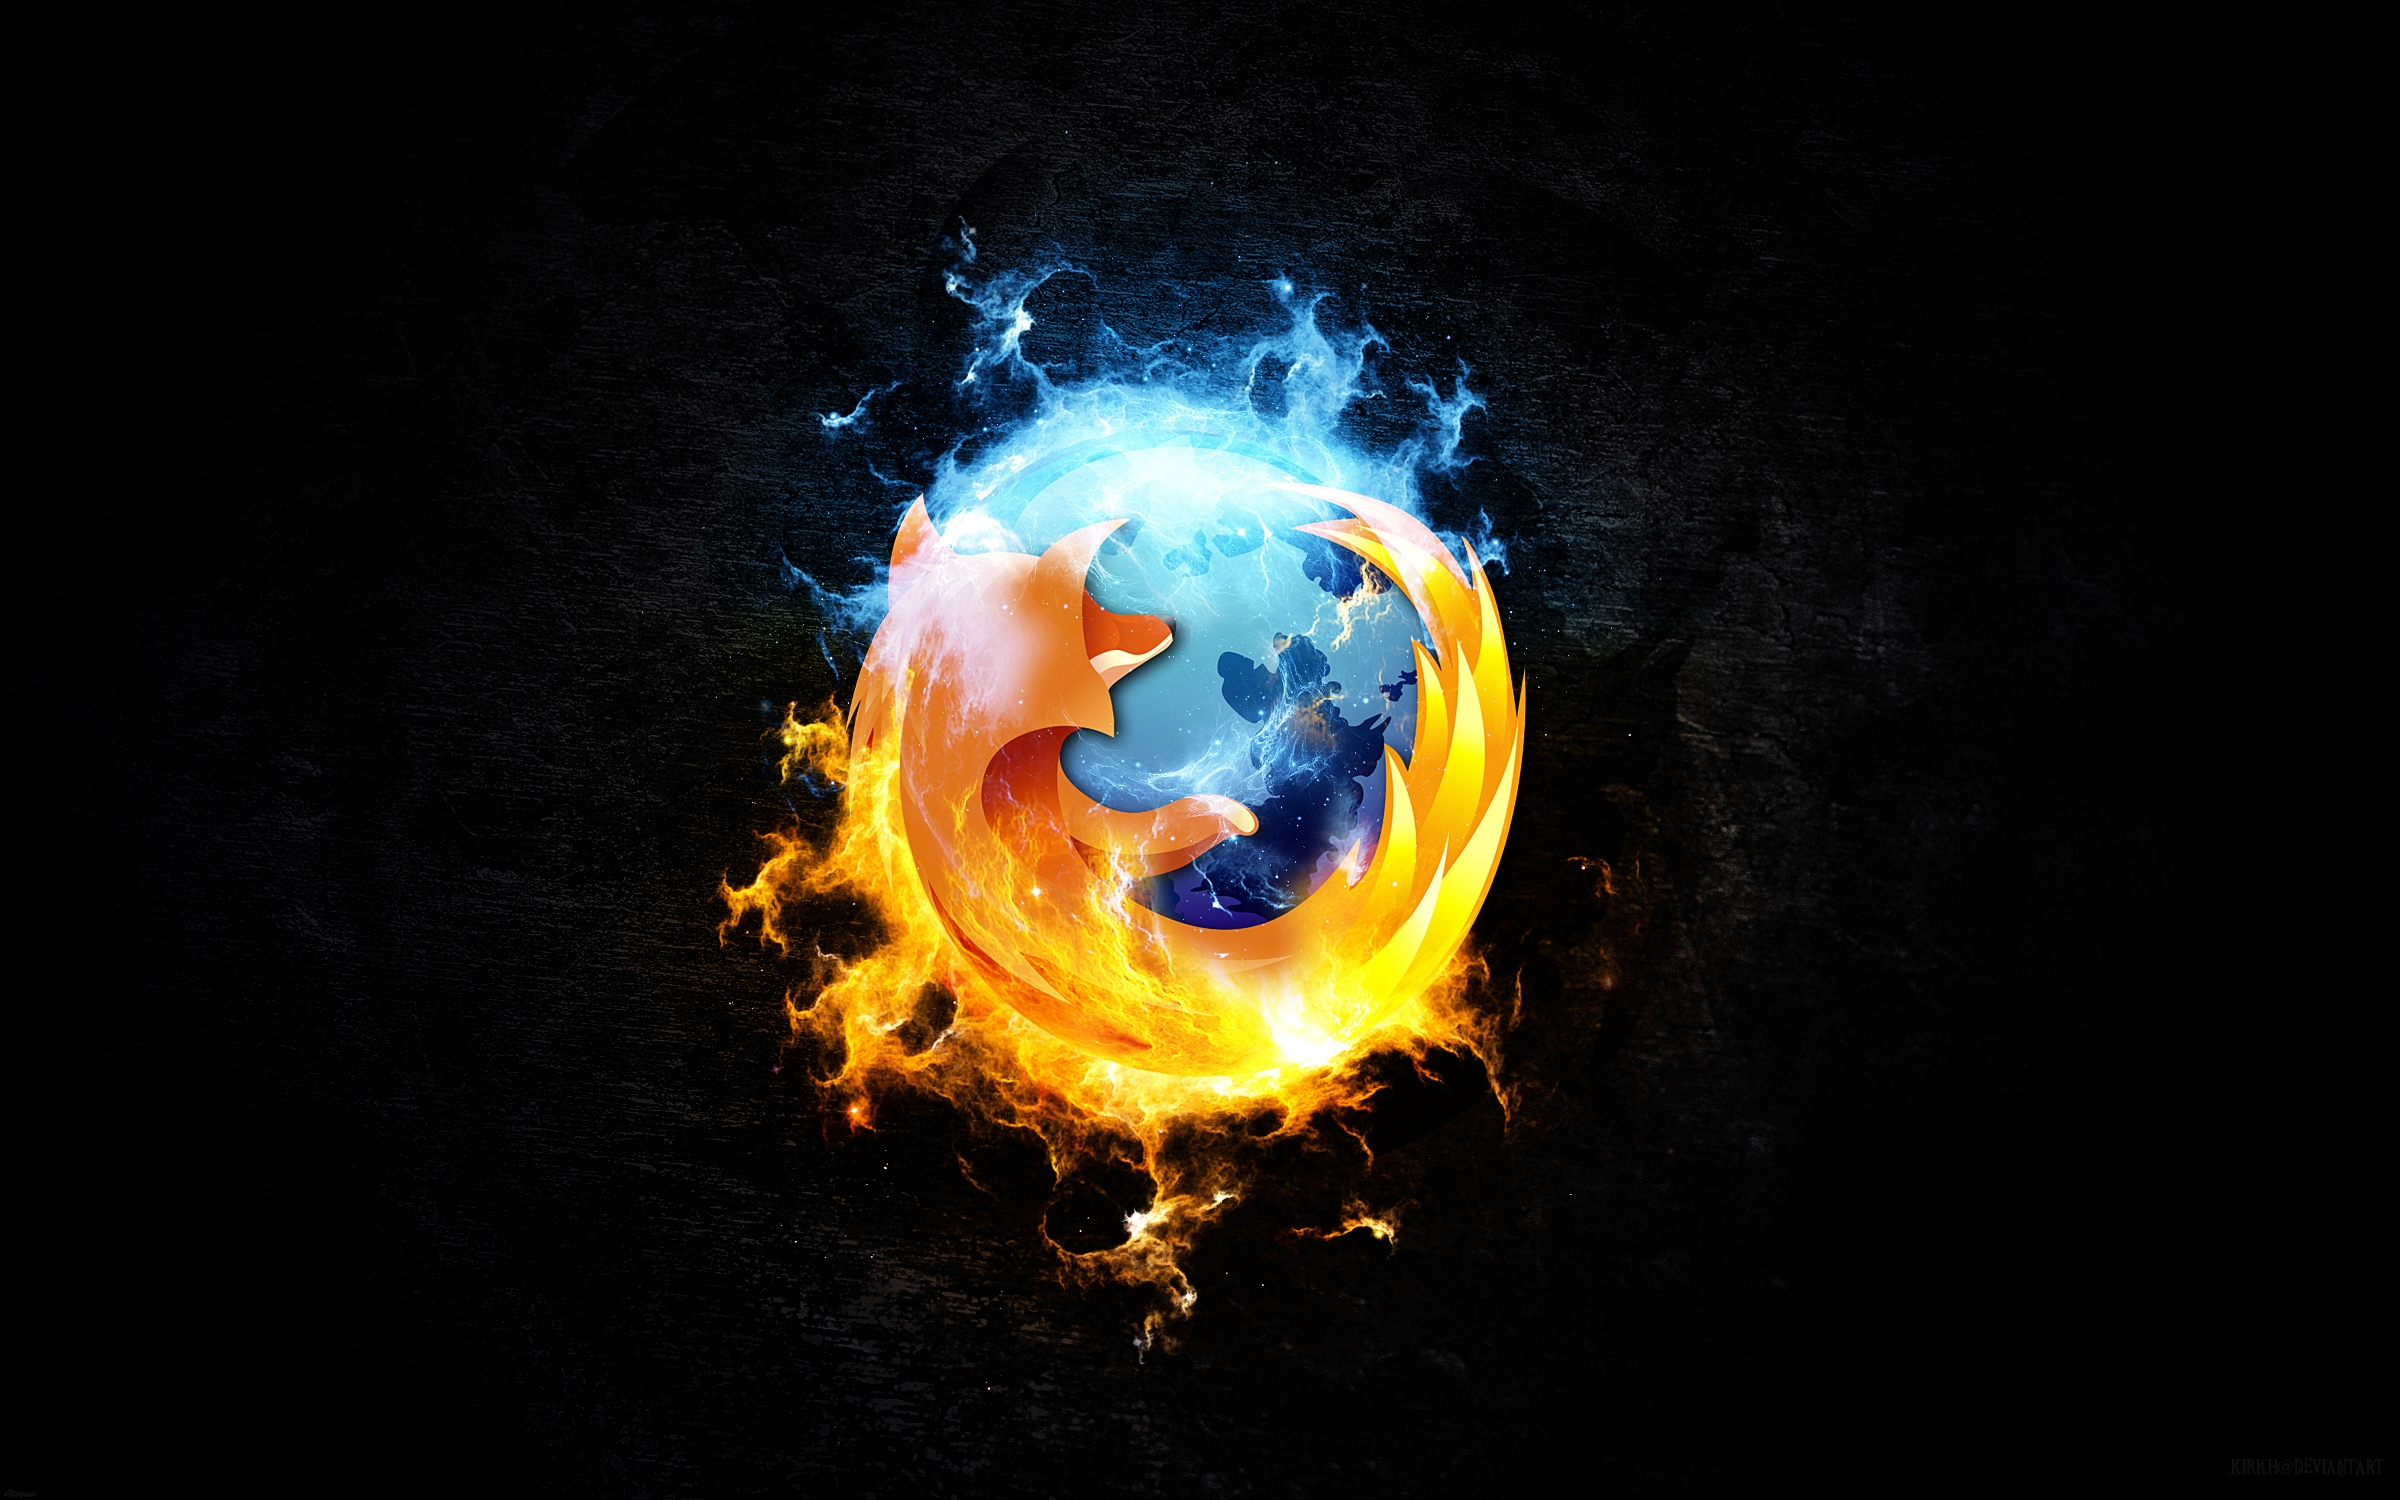 800x600 firefox, browser, internet 800x600 Resolution Wallpaper, HD Hi-Tech  4K Wallpapers, Images, Photos and Background